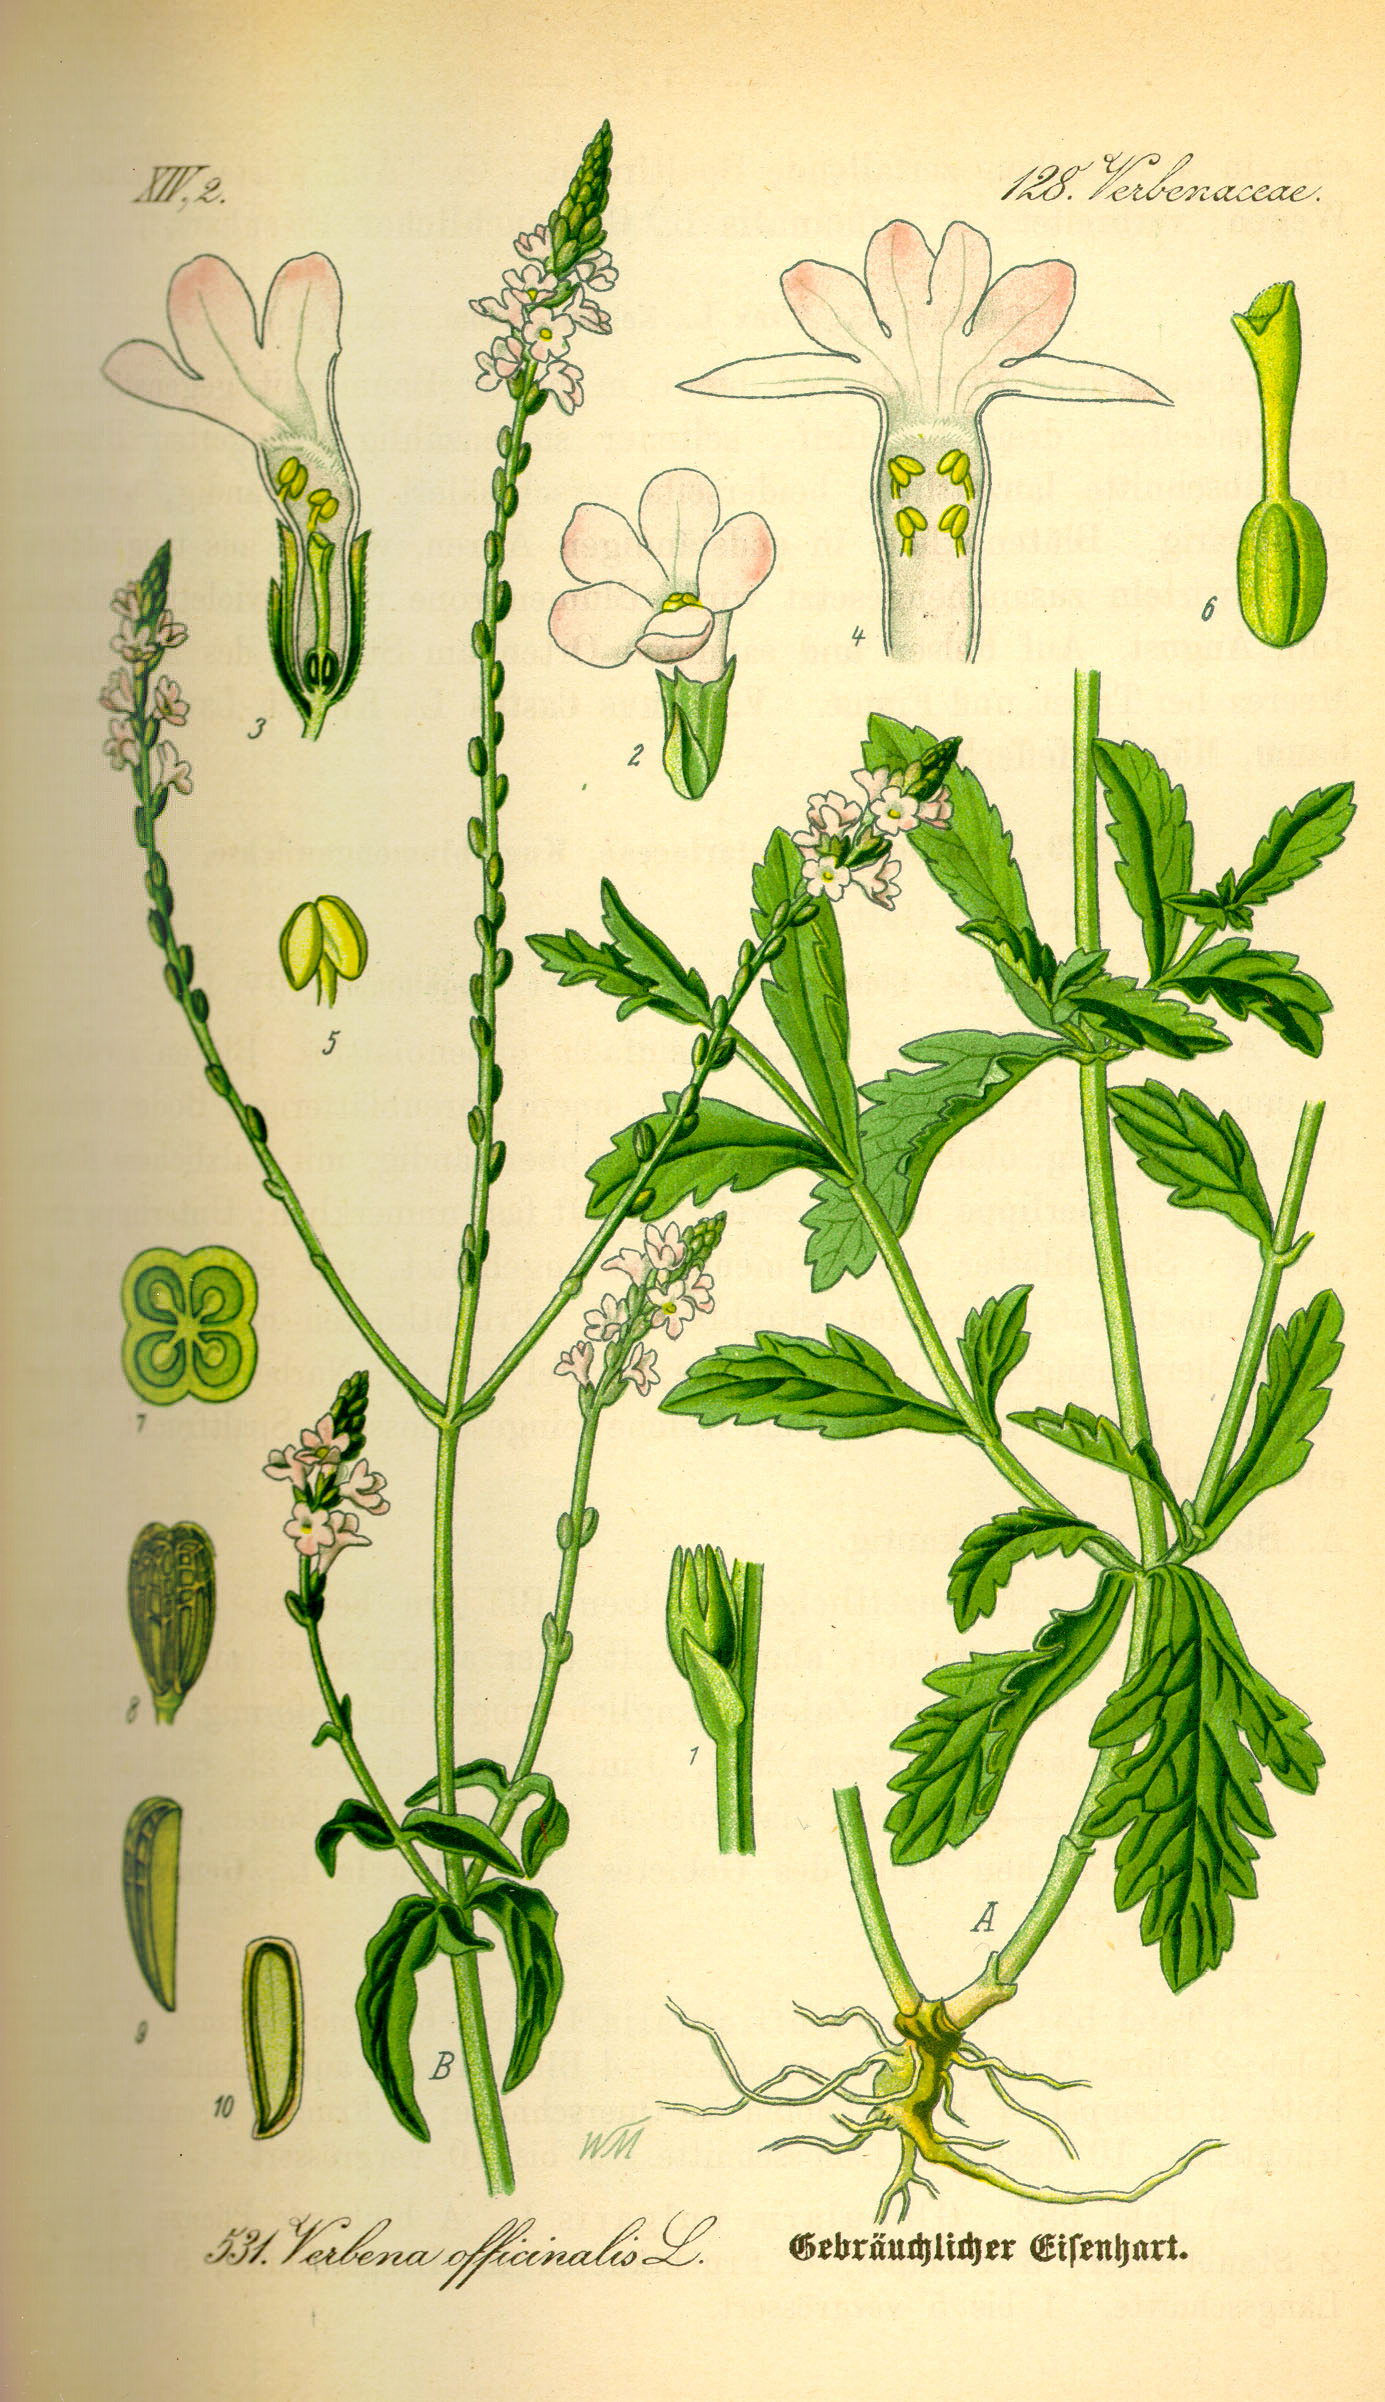 File:Illustration Verbena officinalis0.jpg